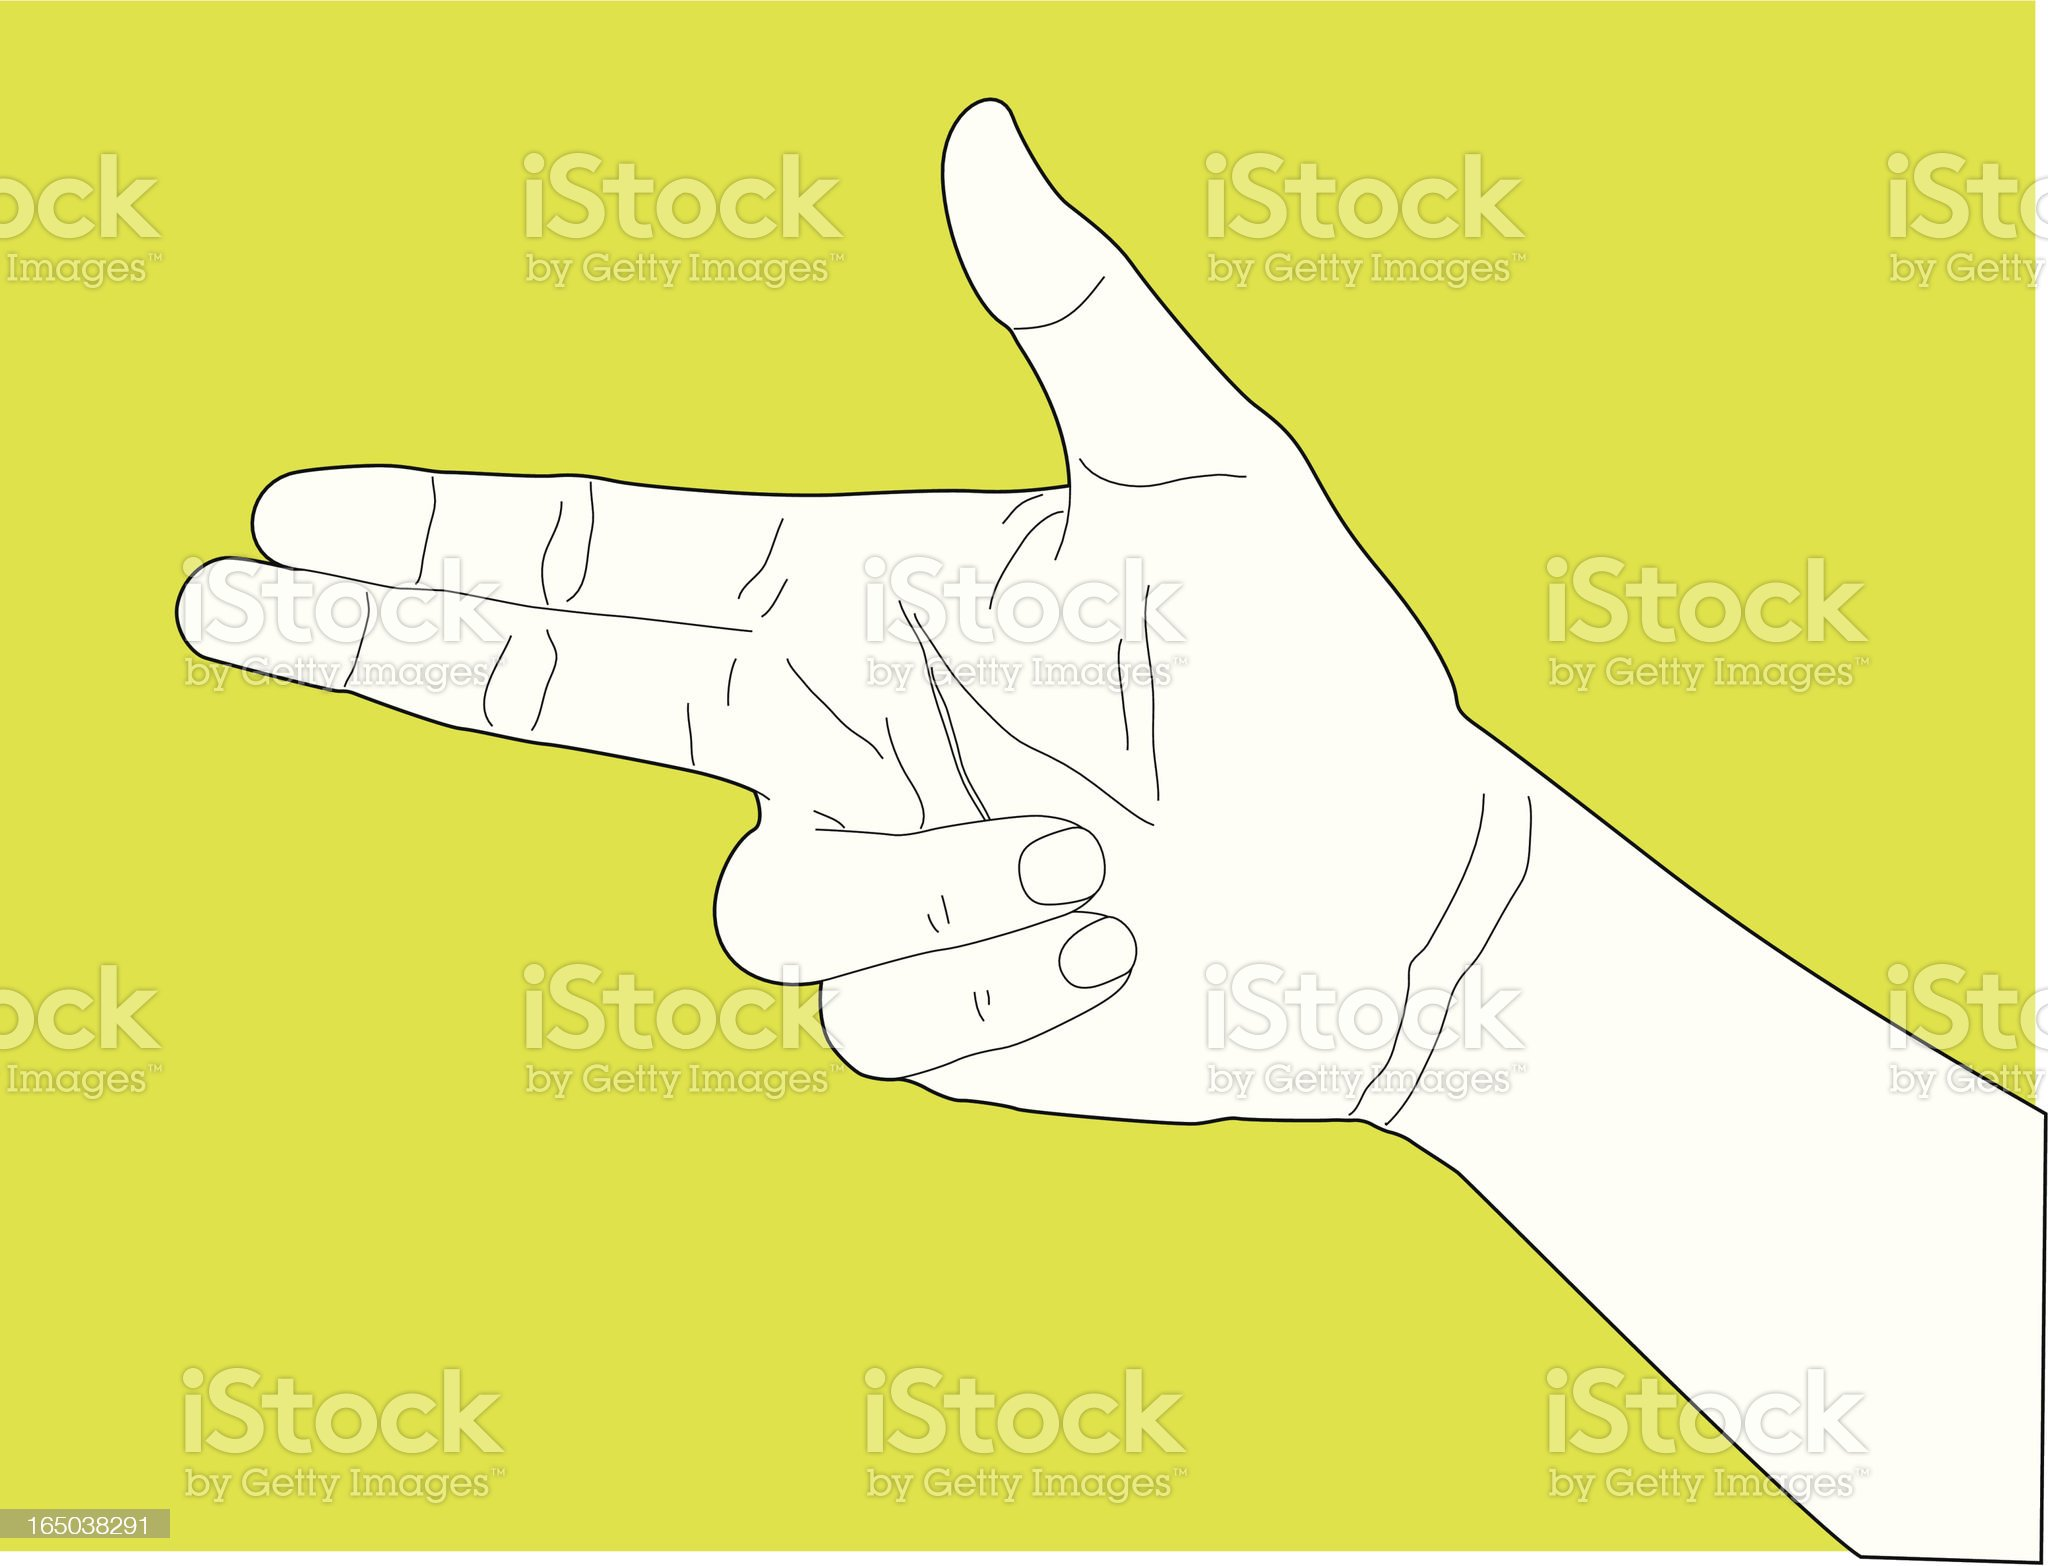 Handgun Hand Gesture royalty-free stock vector art